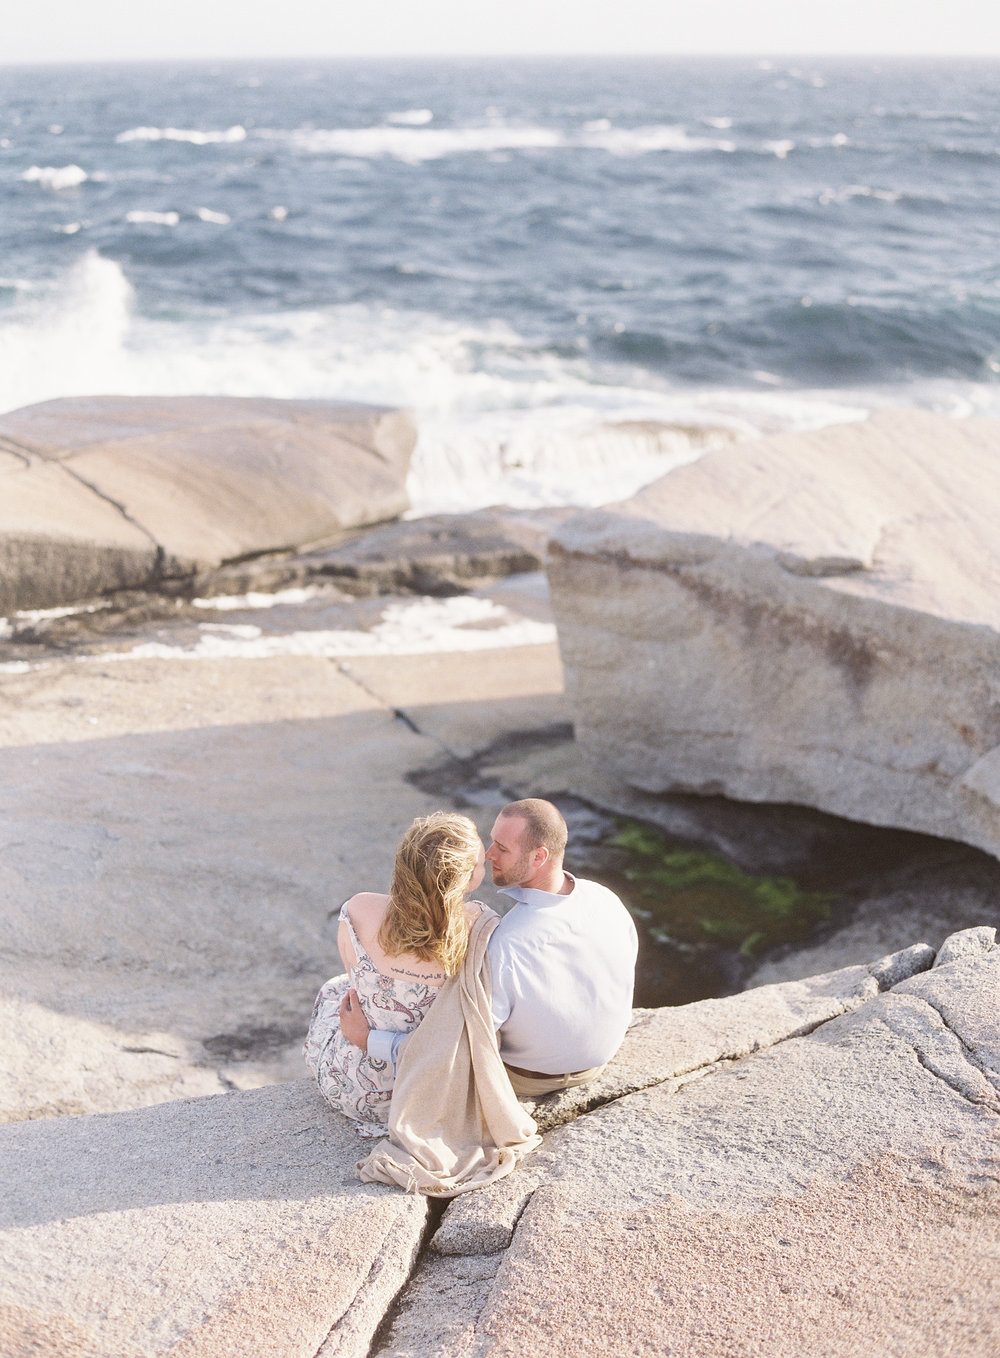 Jacqueline Anne Photography - Alex and Andrew Engagement at Peggy's Cove - Halifax-130.jpg